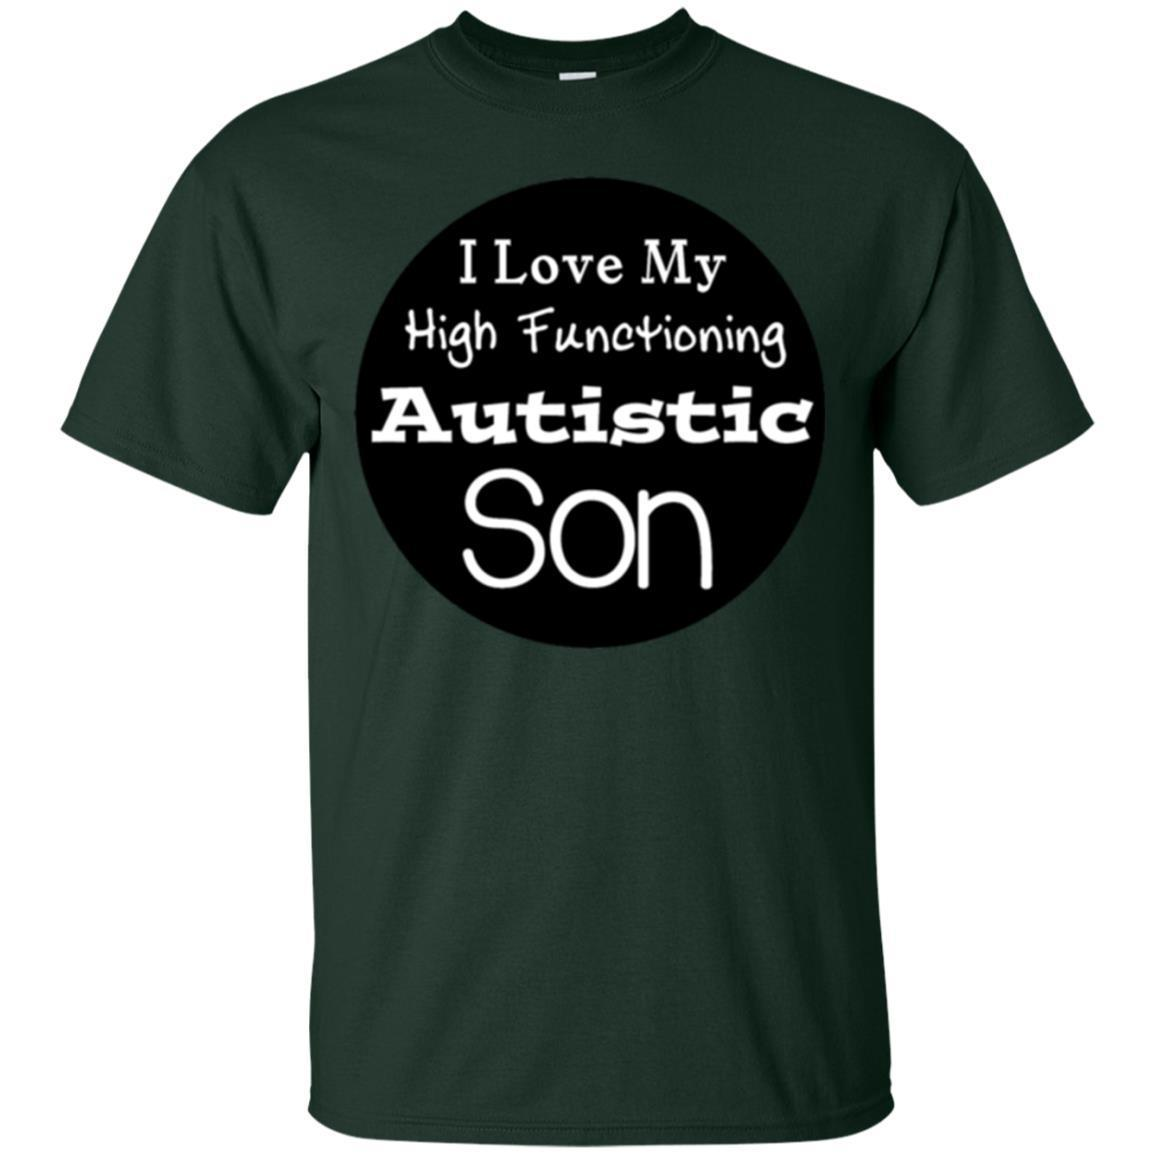 I Love High Functioning Autistic Son T-Shirt